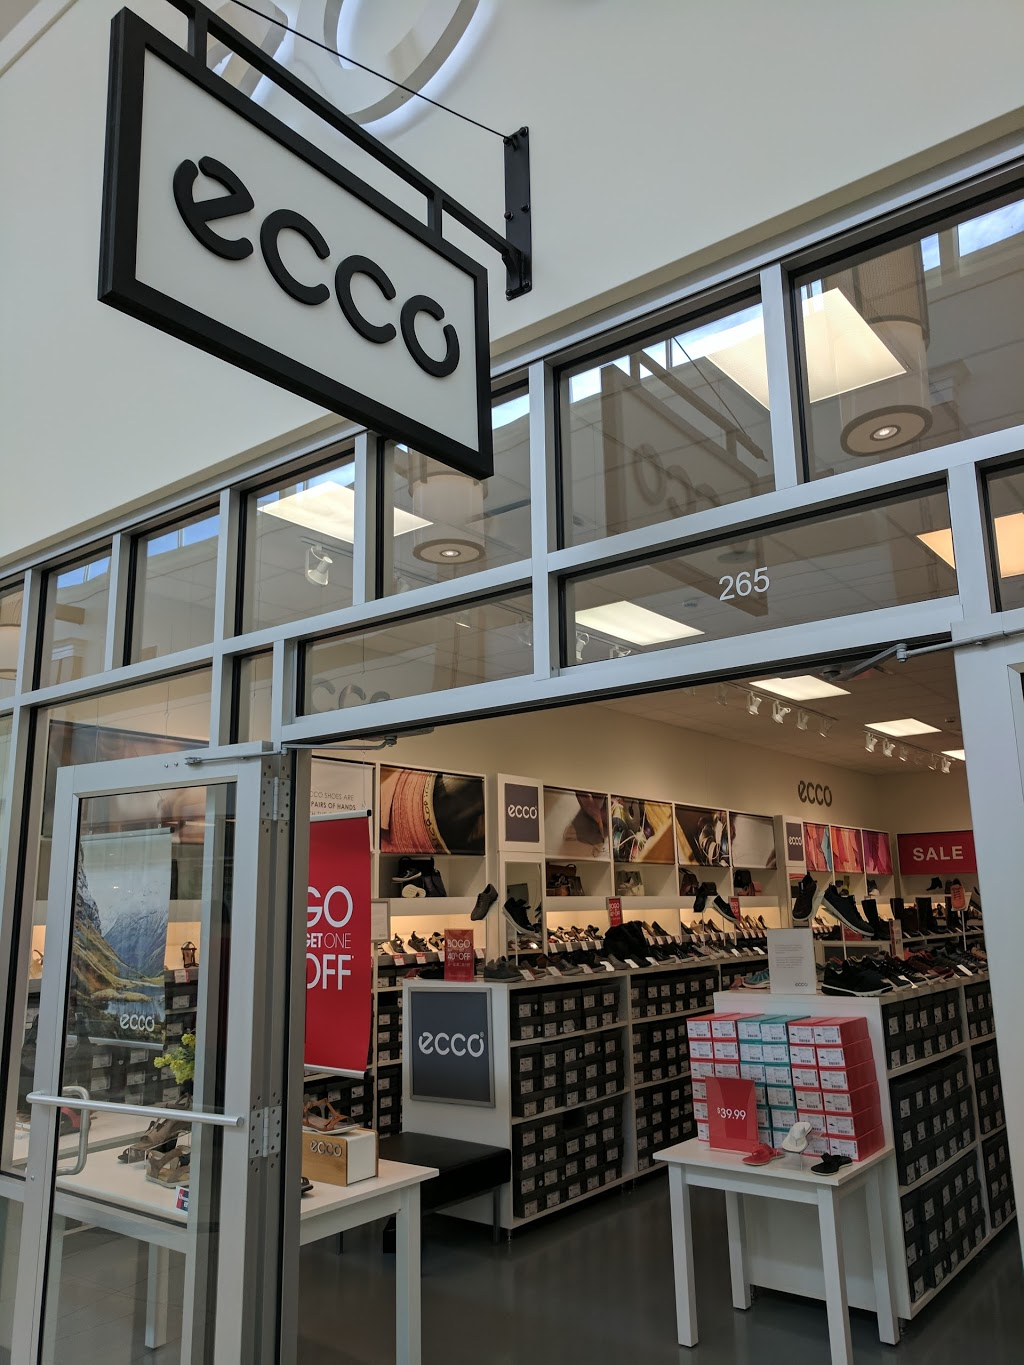 ECCO Outlet - shoe store  | Photo 5 of 7 | Address: 455 Trolley Line Blvd #265, Mashantucket, CT 06338, USA | Phone: (860) 213-5286